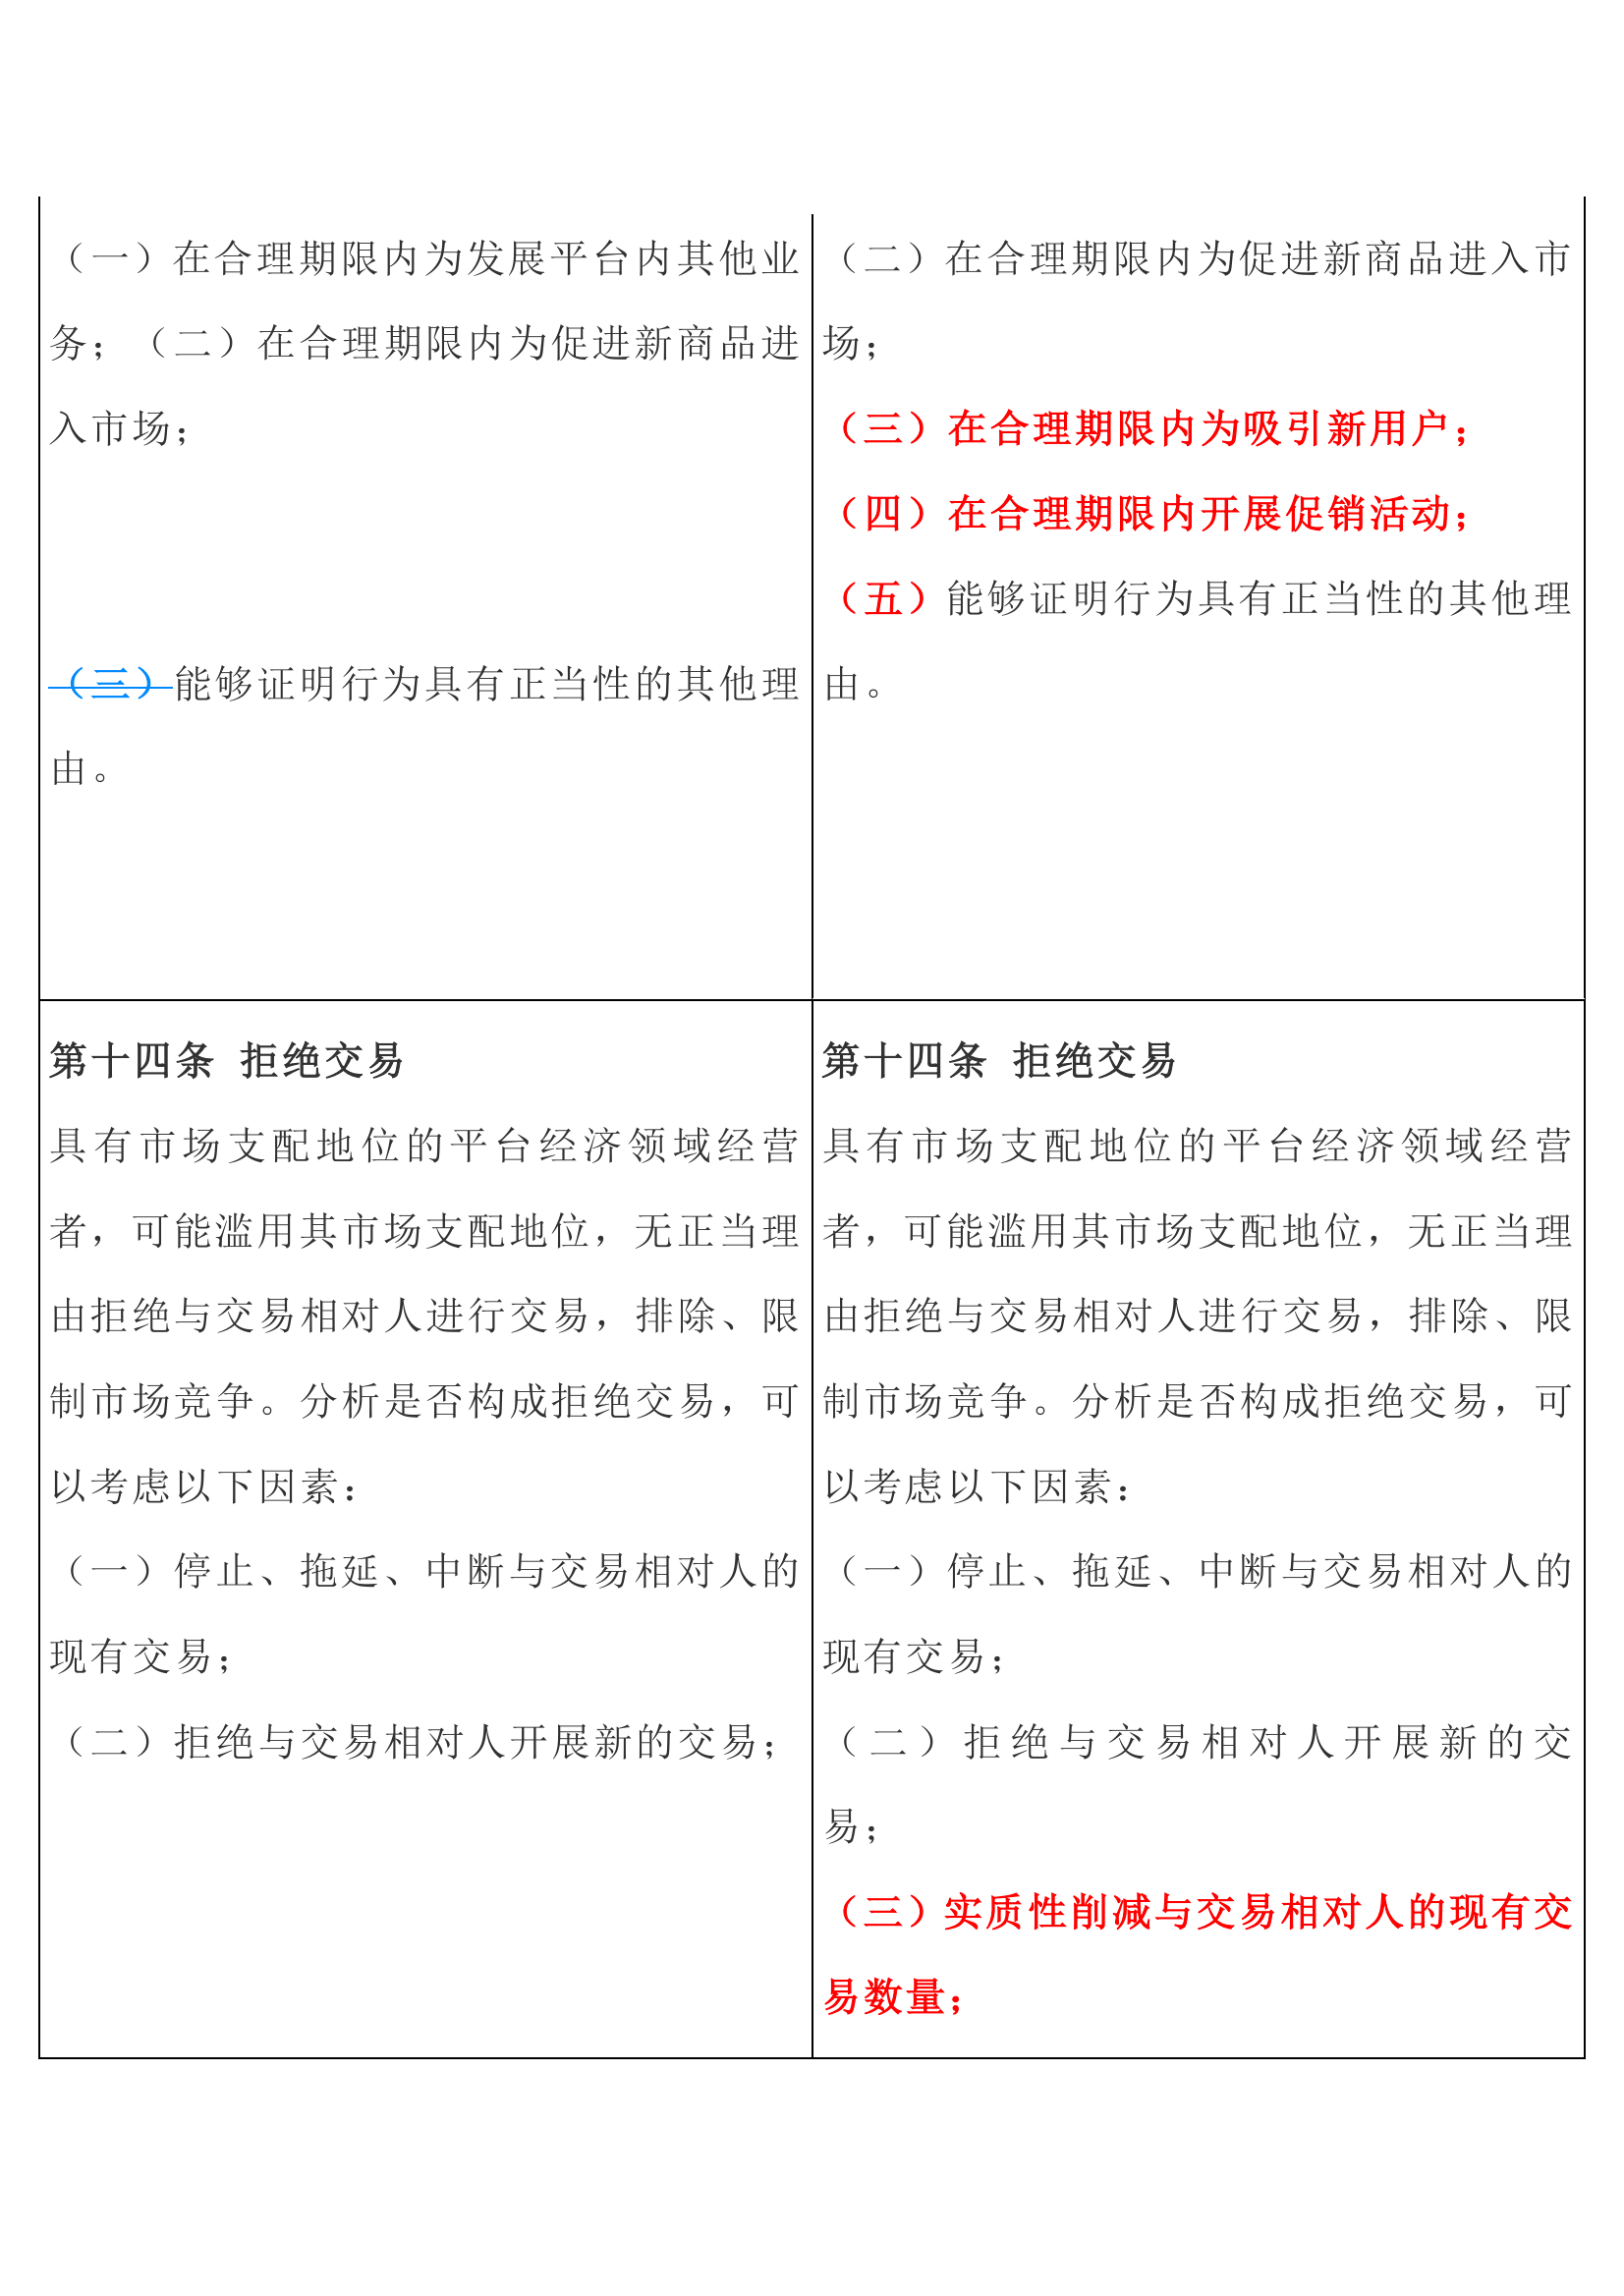 share_pdf_exportpage17(2).png